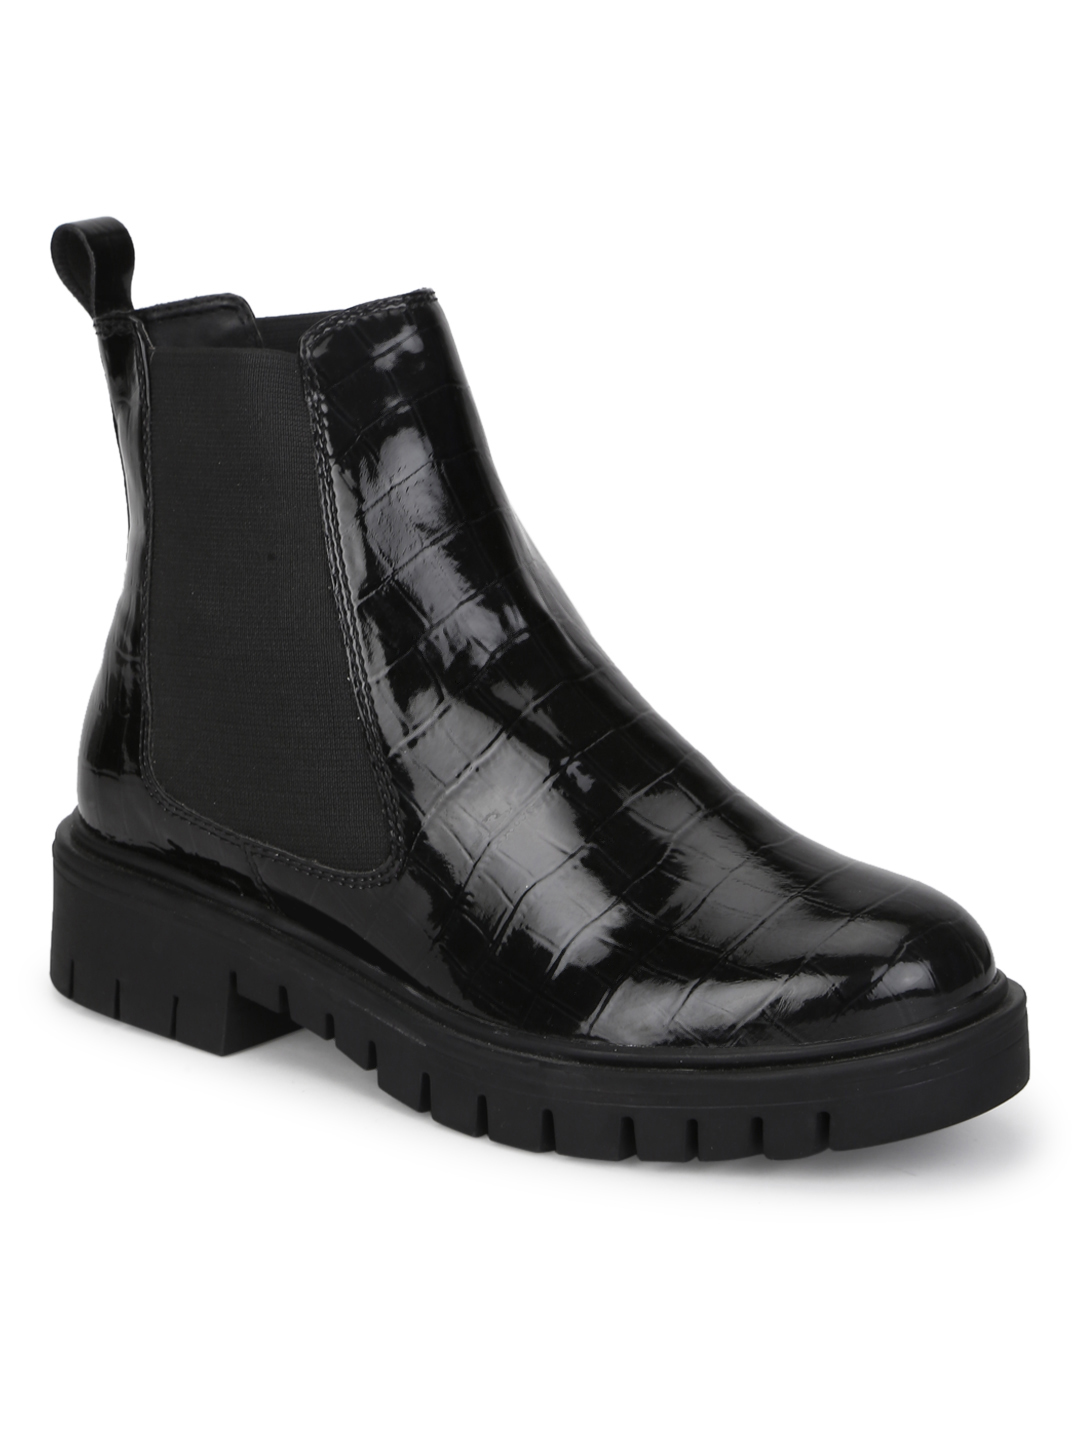 Truffle Collection | Truffle Collection Black Croc Patent Chelsea Ankle Boots